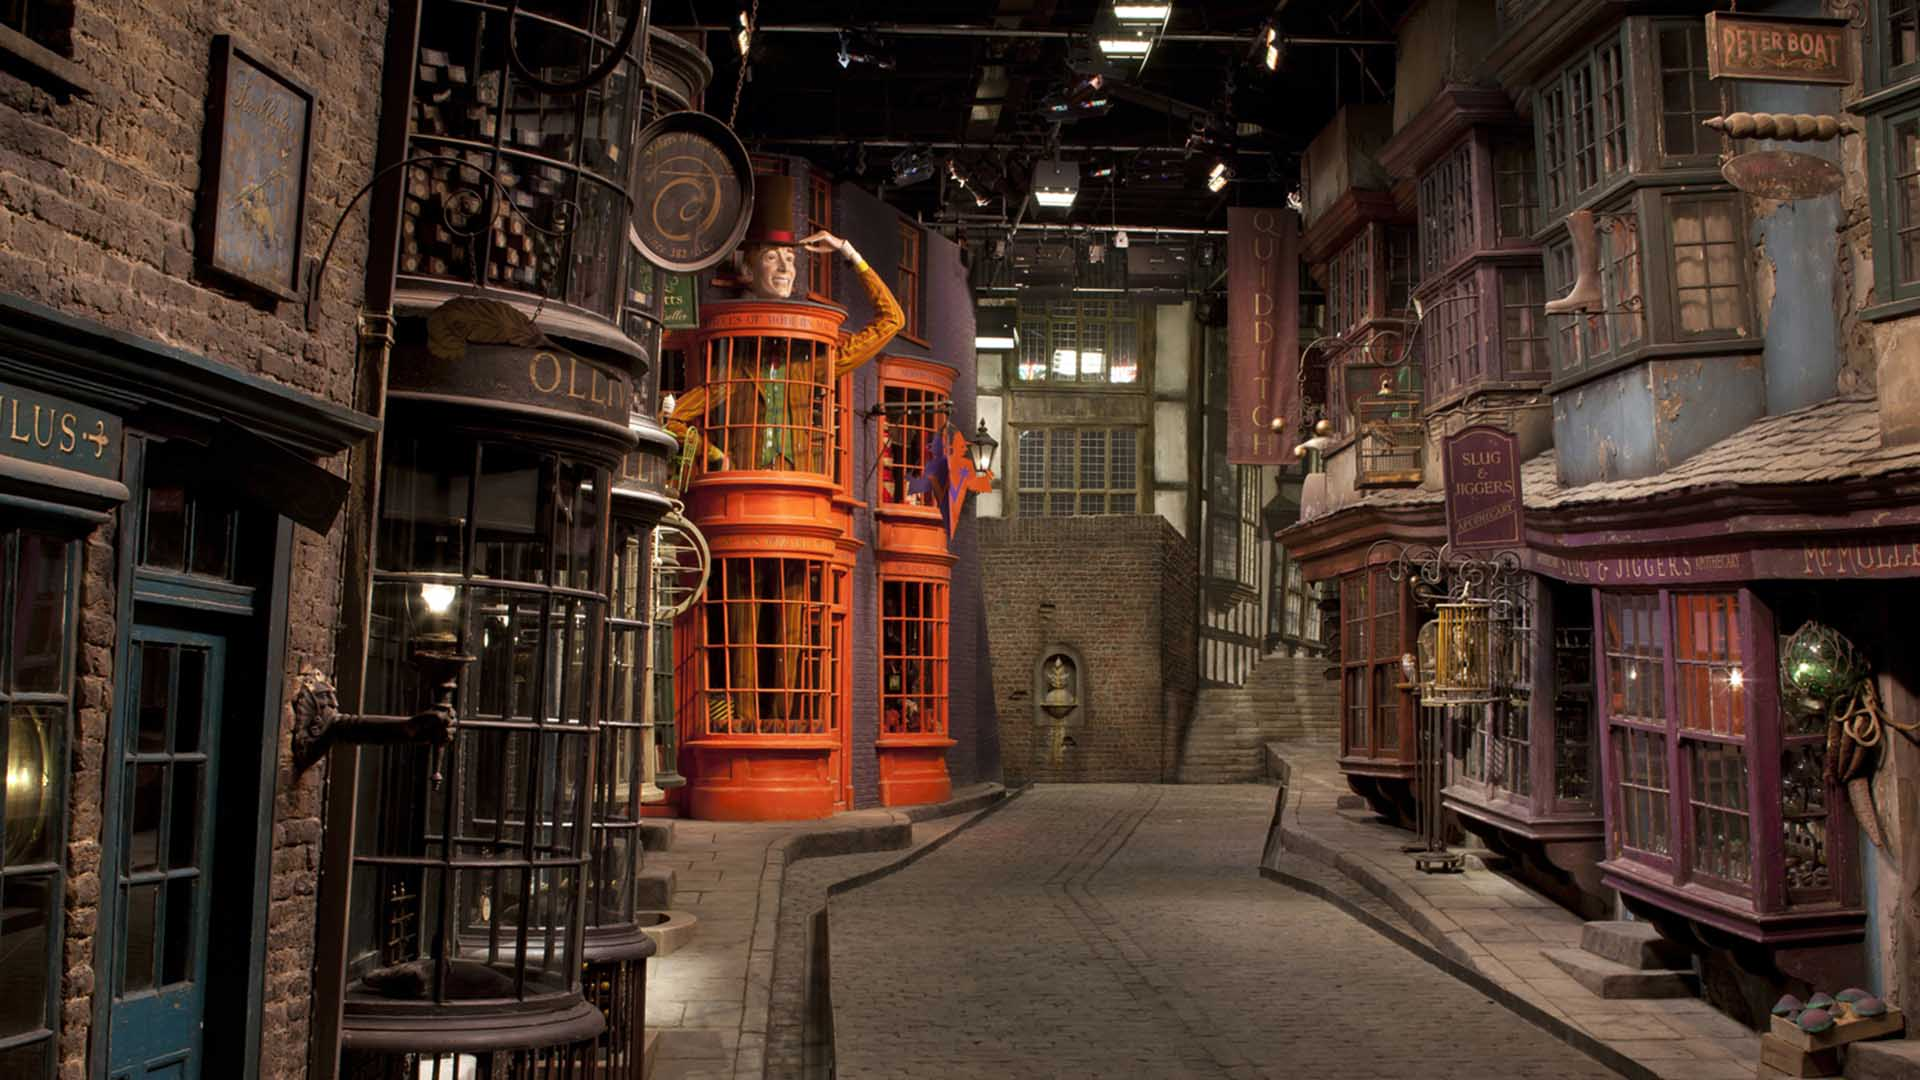 Japan's New 'Making of Harry Potter' Theme Park Will Open in 2023